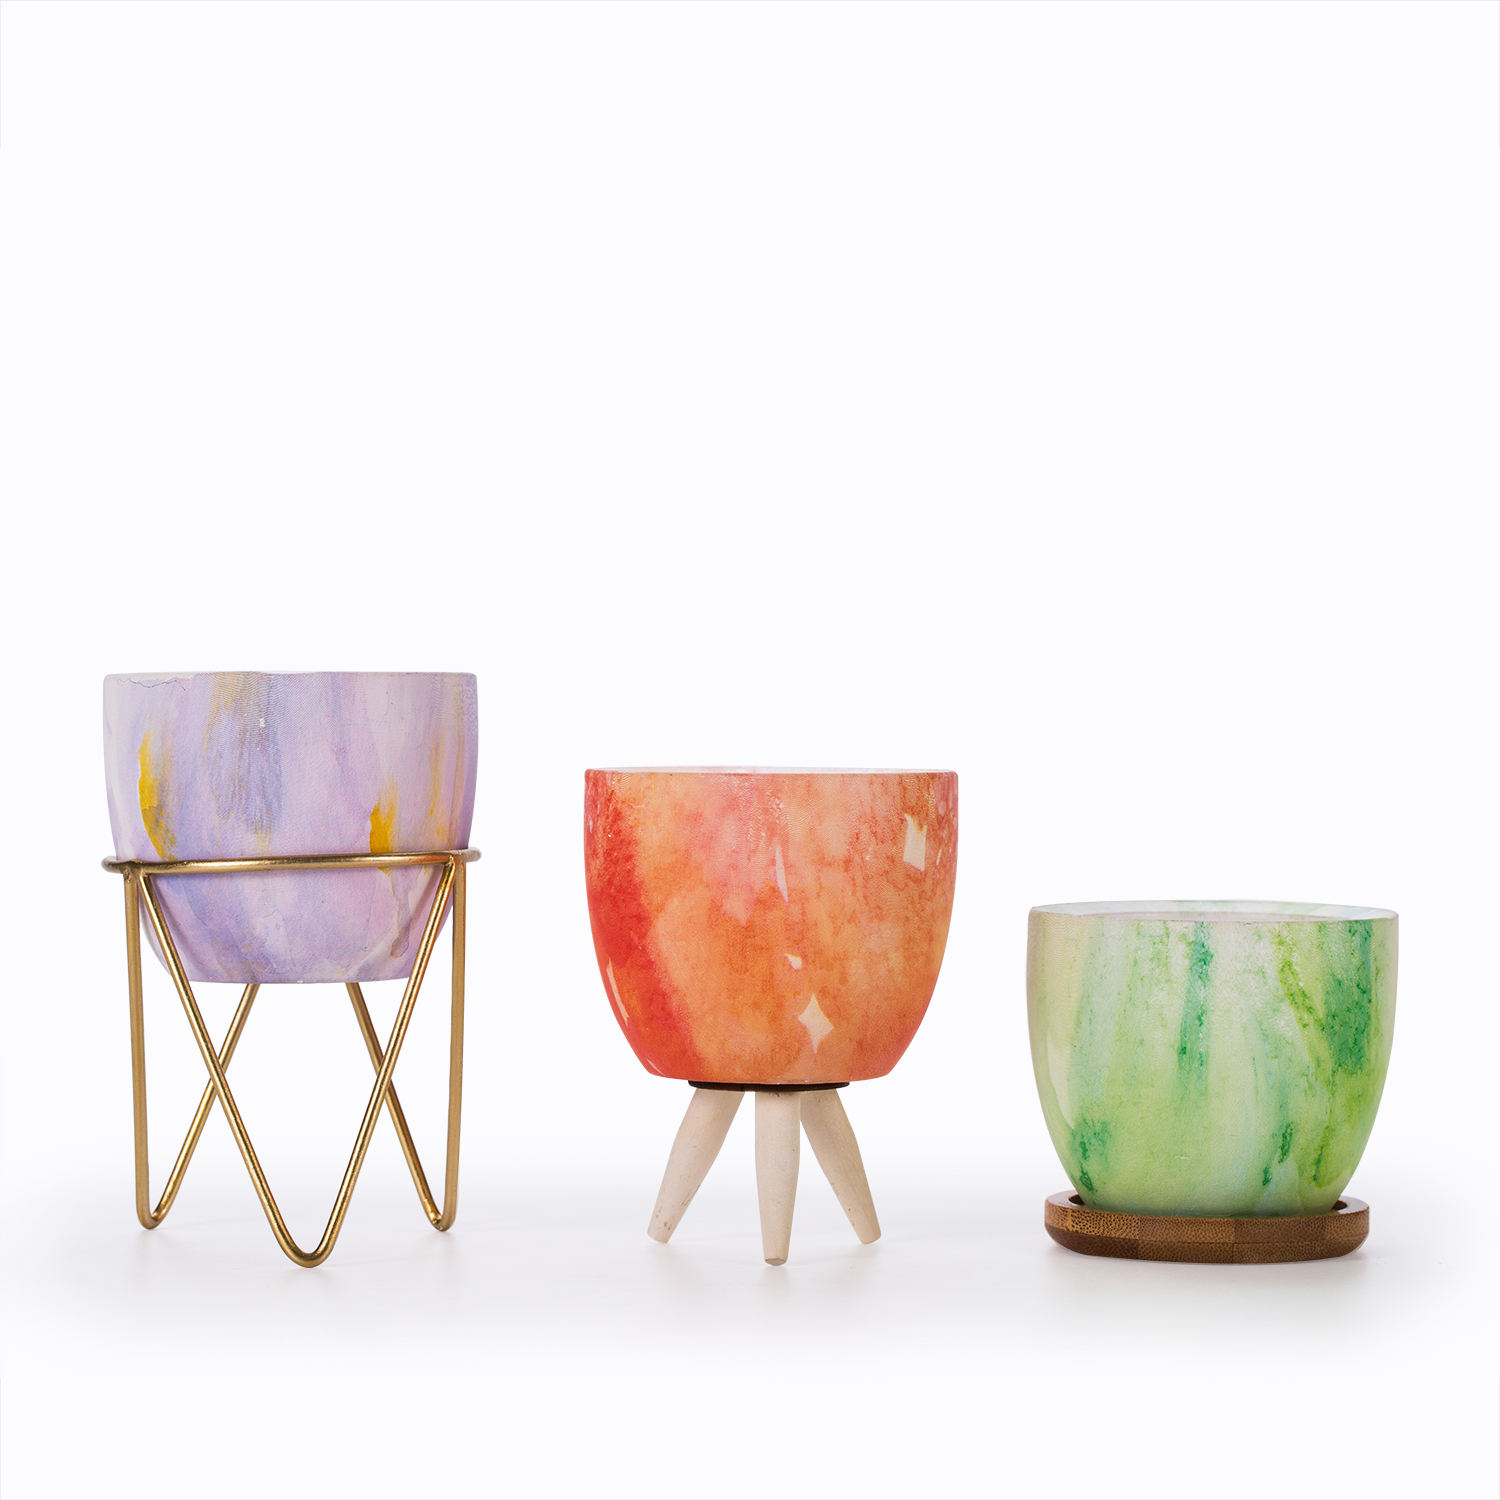 Mini Pastel grain Spring color Succulent Cactus Garden Ceramic Flower Pot with metal stand/ Bamboo saucer/Wood feet 7.8*7.8*6.5